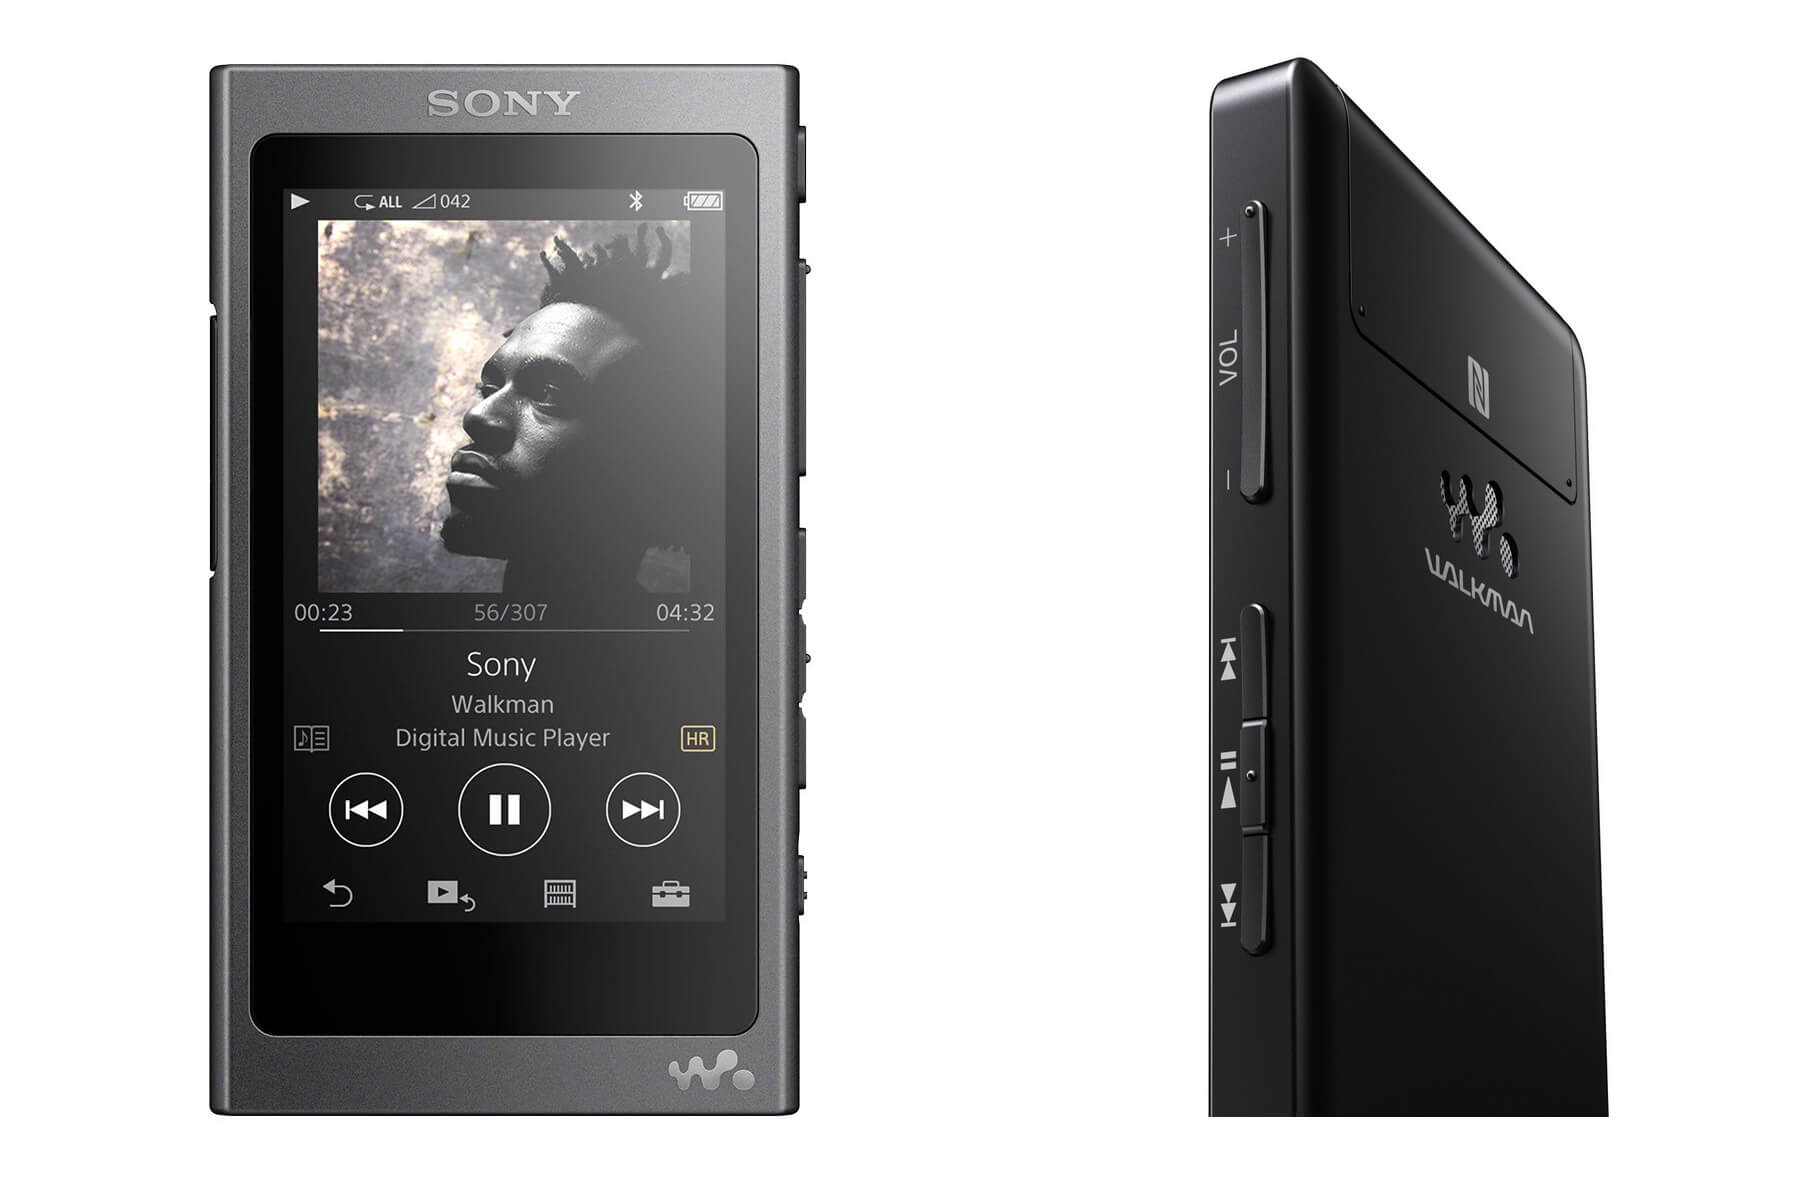 Sony Walkman NW-A30